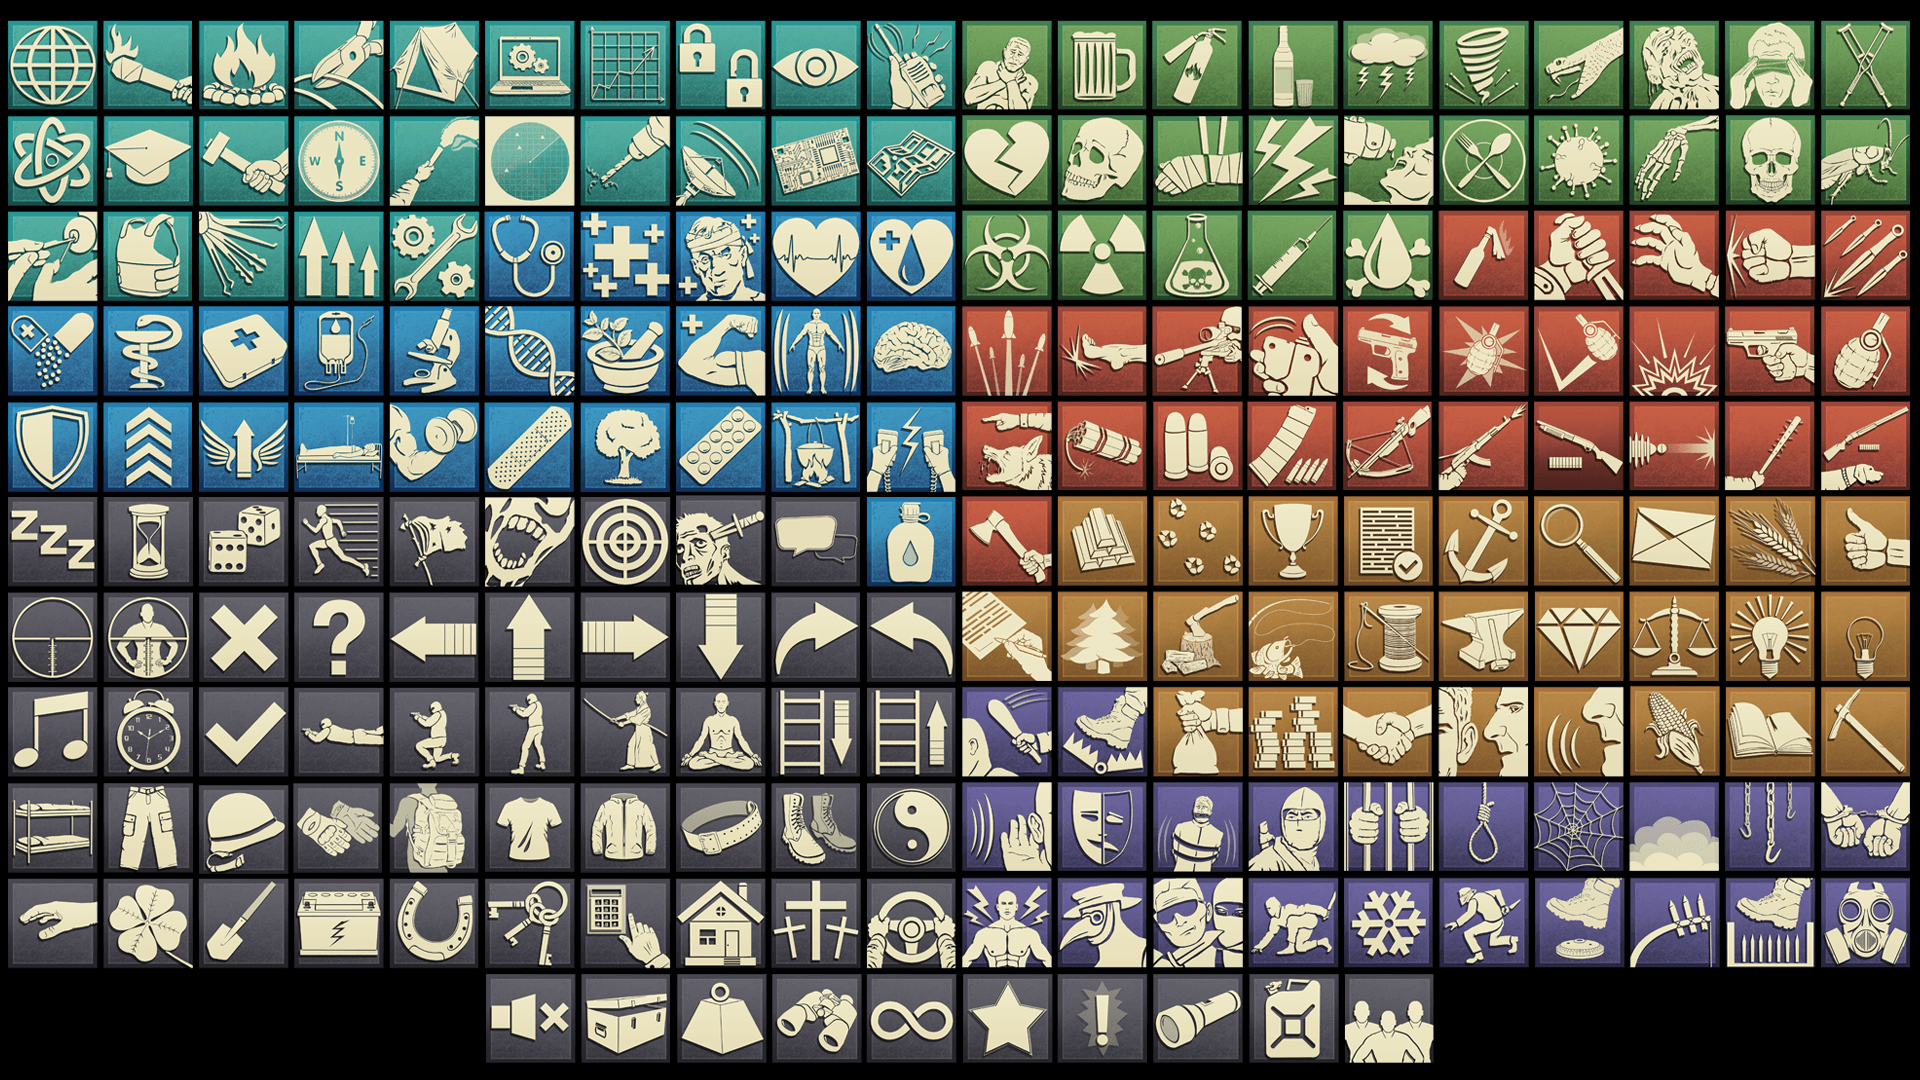 Survival Skill Icons by REXARD in 2D Assets - UE4 Marketplace